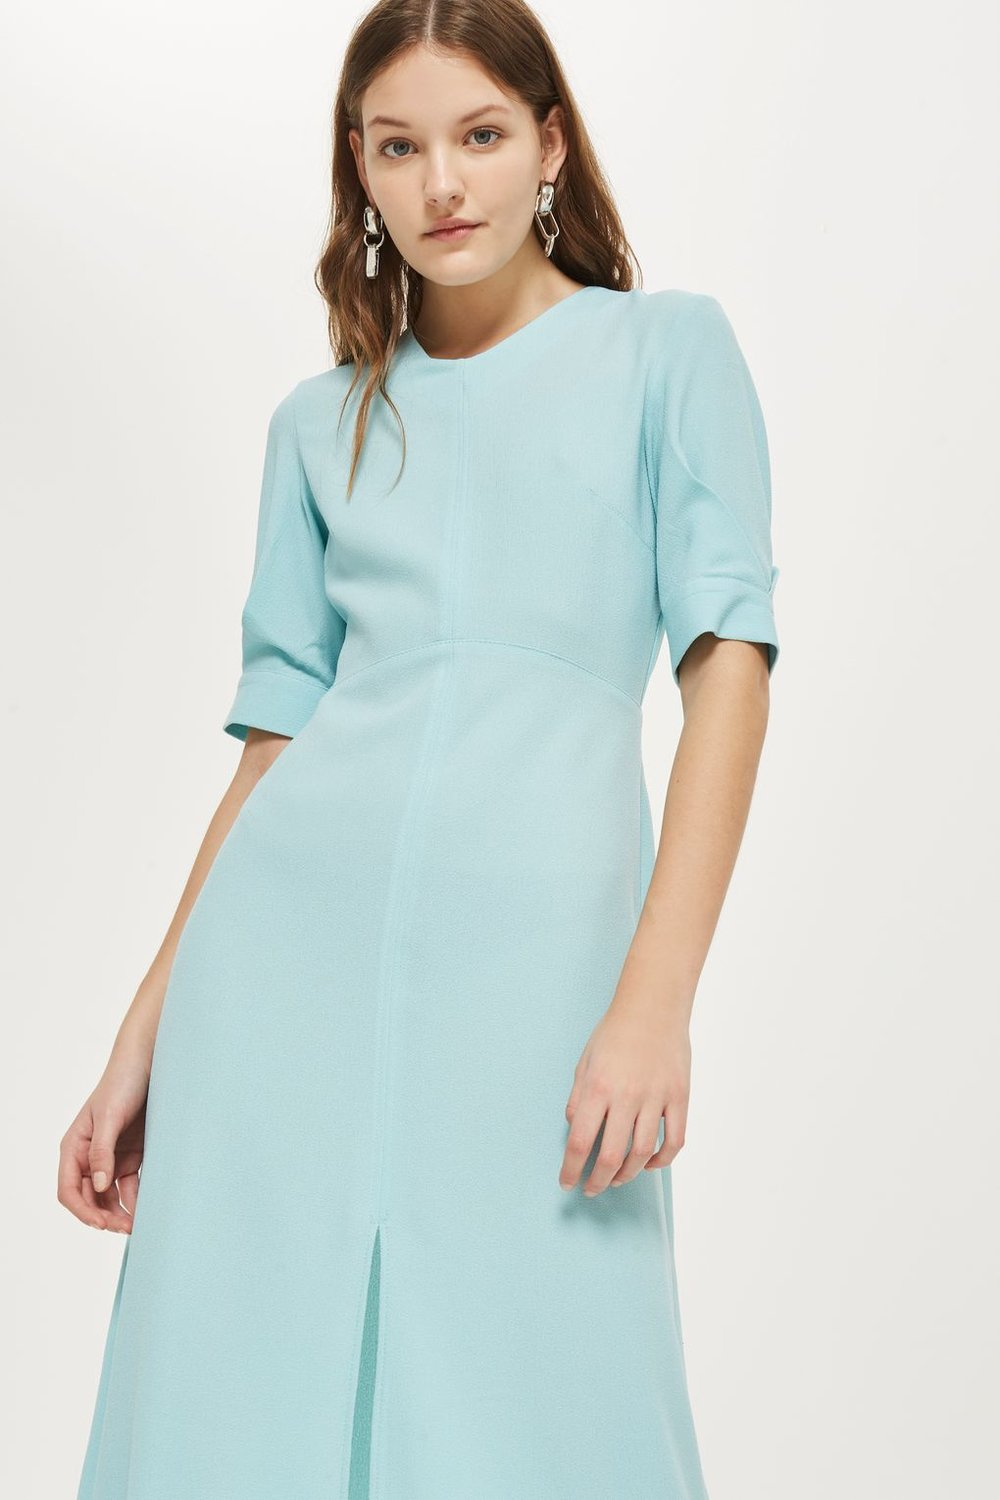 The Perfect Dress for Spring - Courtesy of Topshop